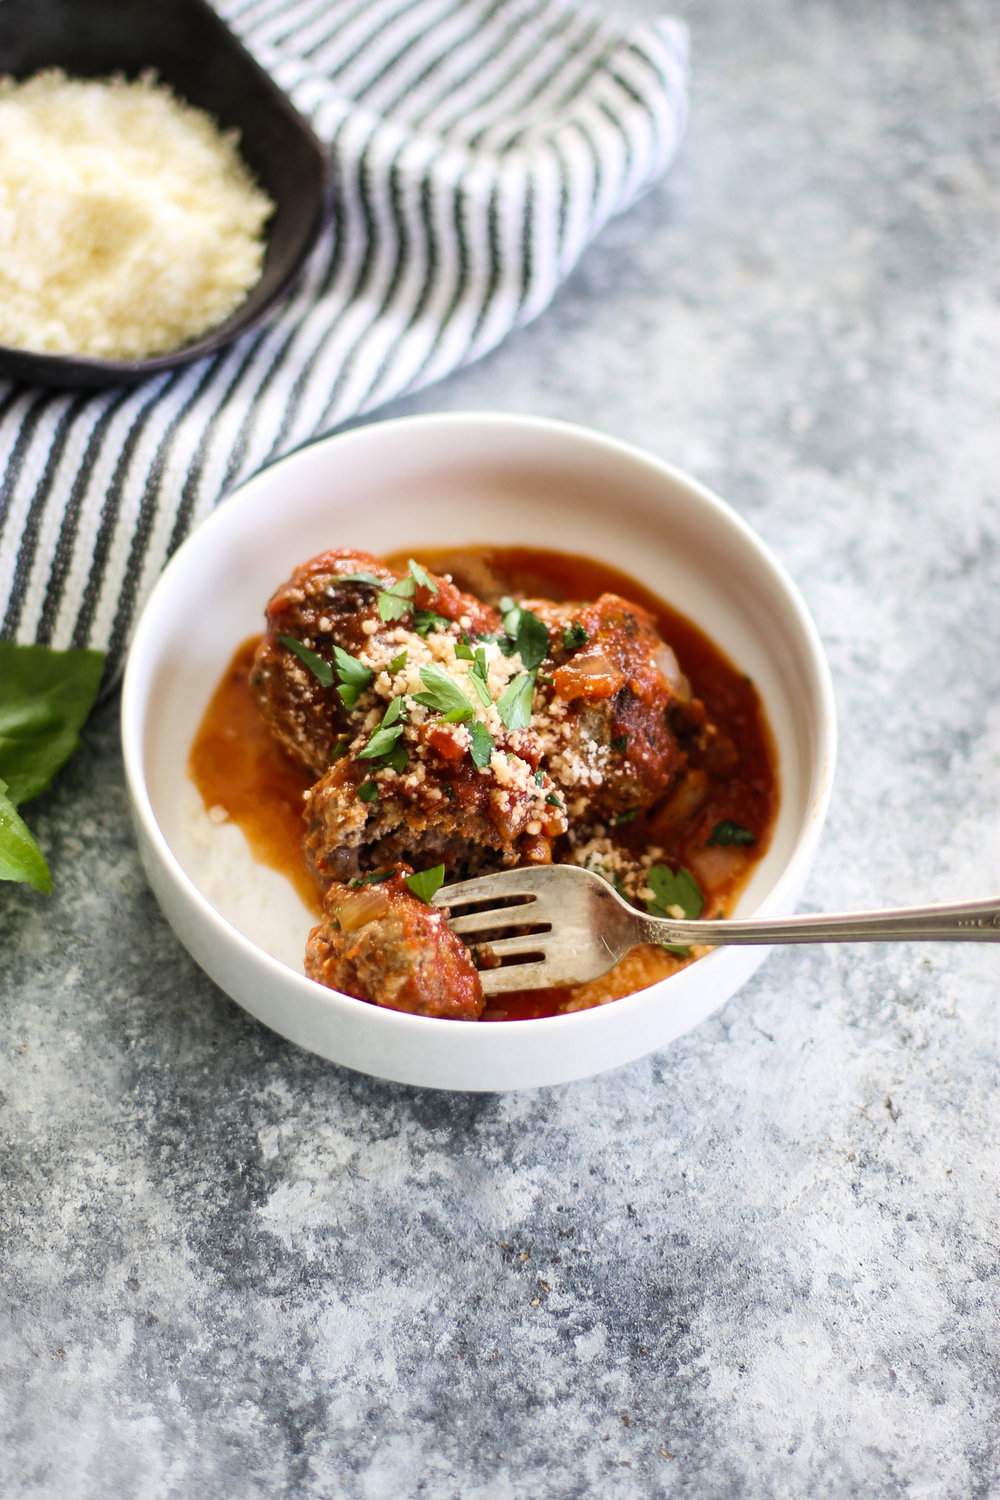 Easy Homemade Meatballs in Marinara: My Diary of Us